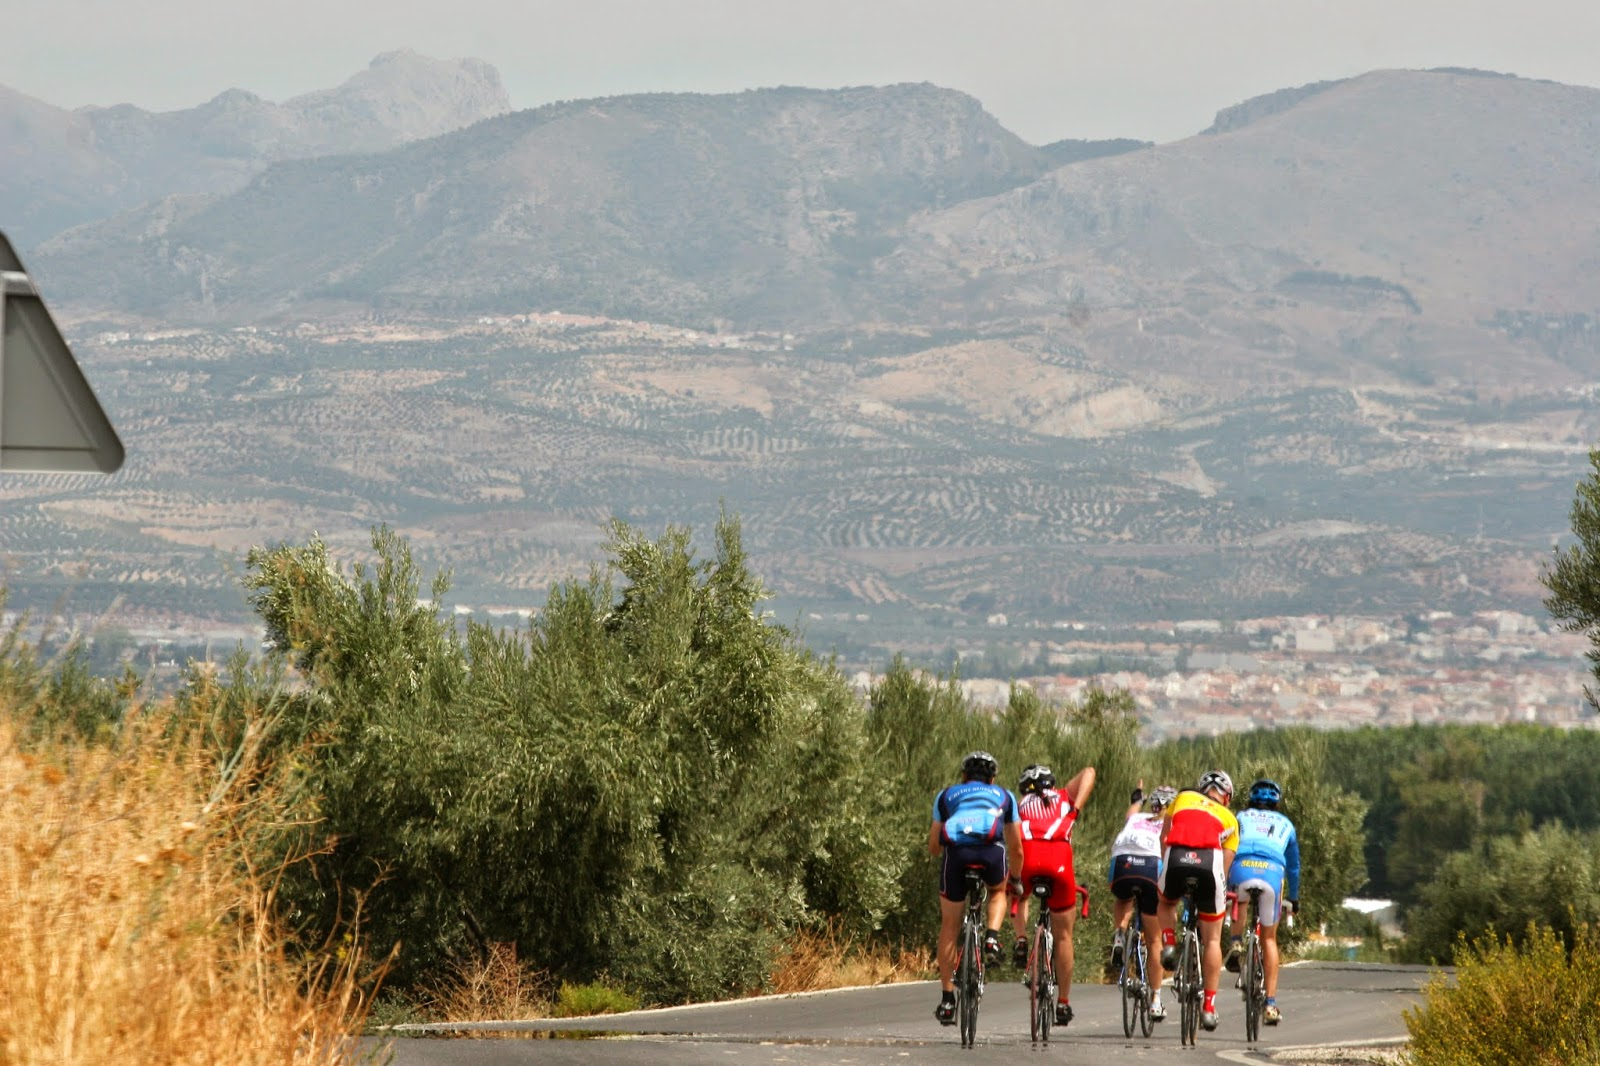 Cyclists will love the Challenge of road cycling in Granada